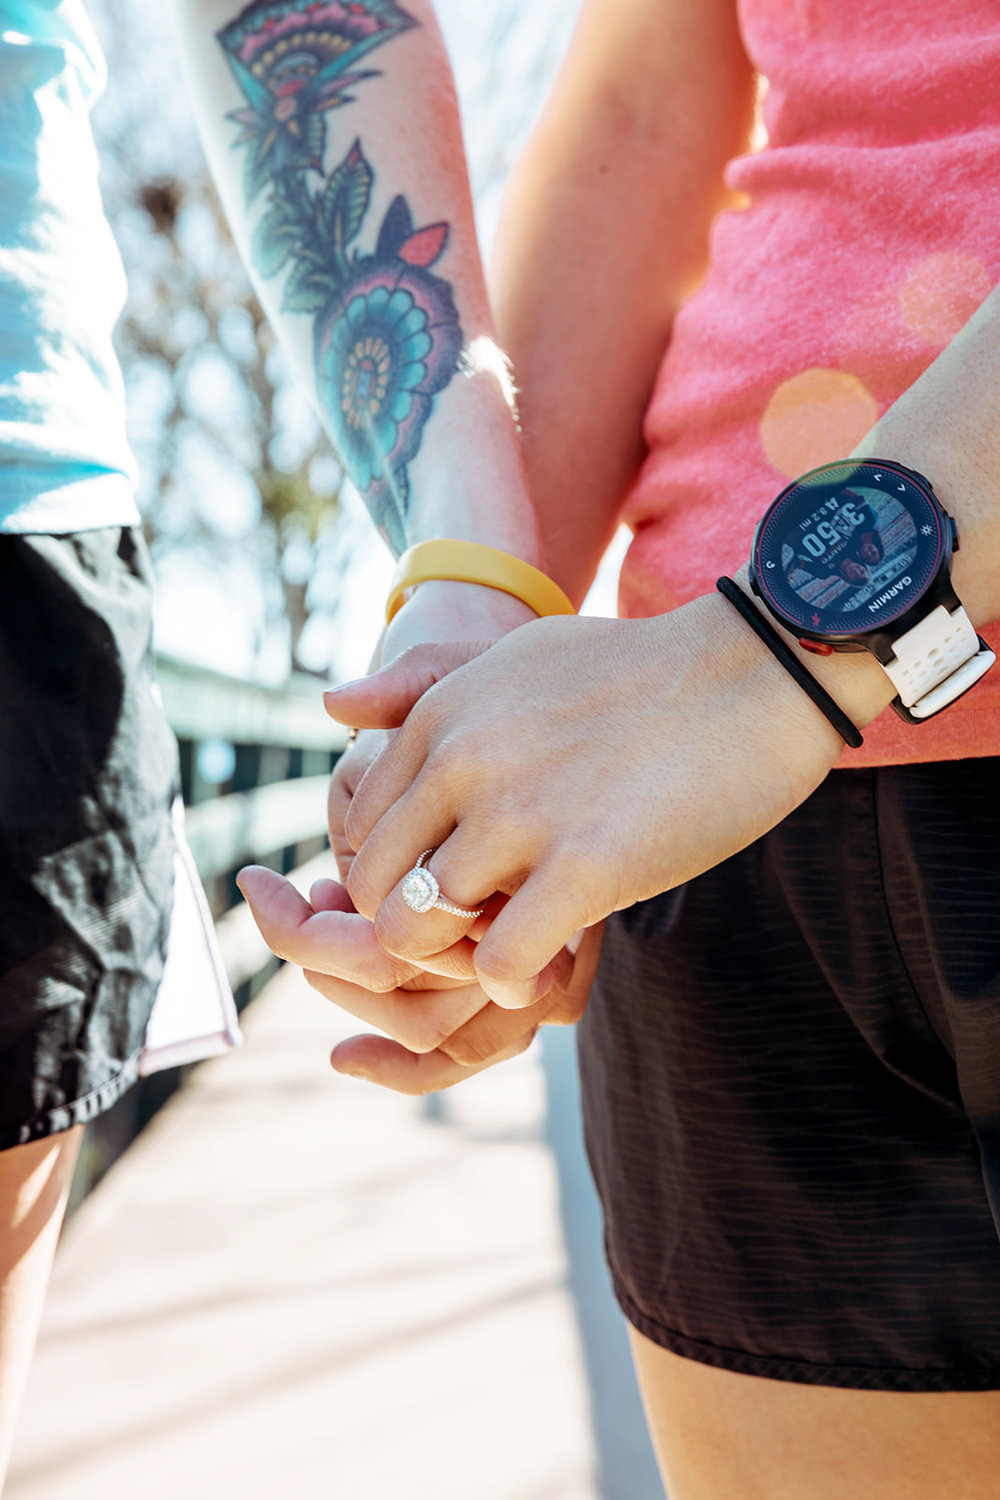 tattooed engaged couple holding hands and showing off engagement rings on a sunny pathway by Austin Texas LGBTQ friendly wedding photographer Ziggy Shoots